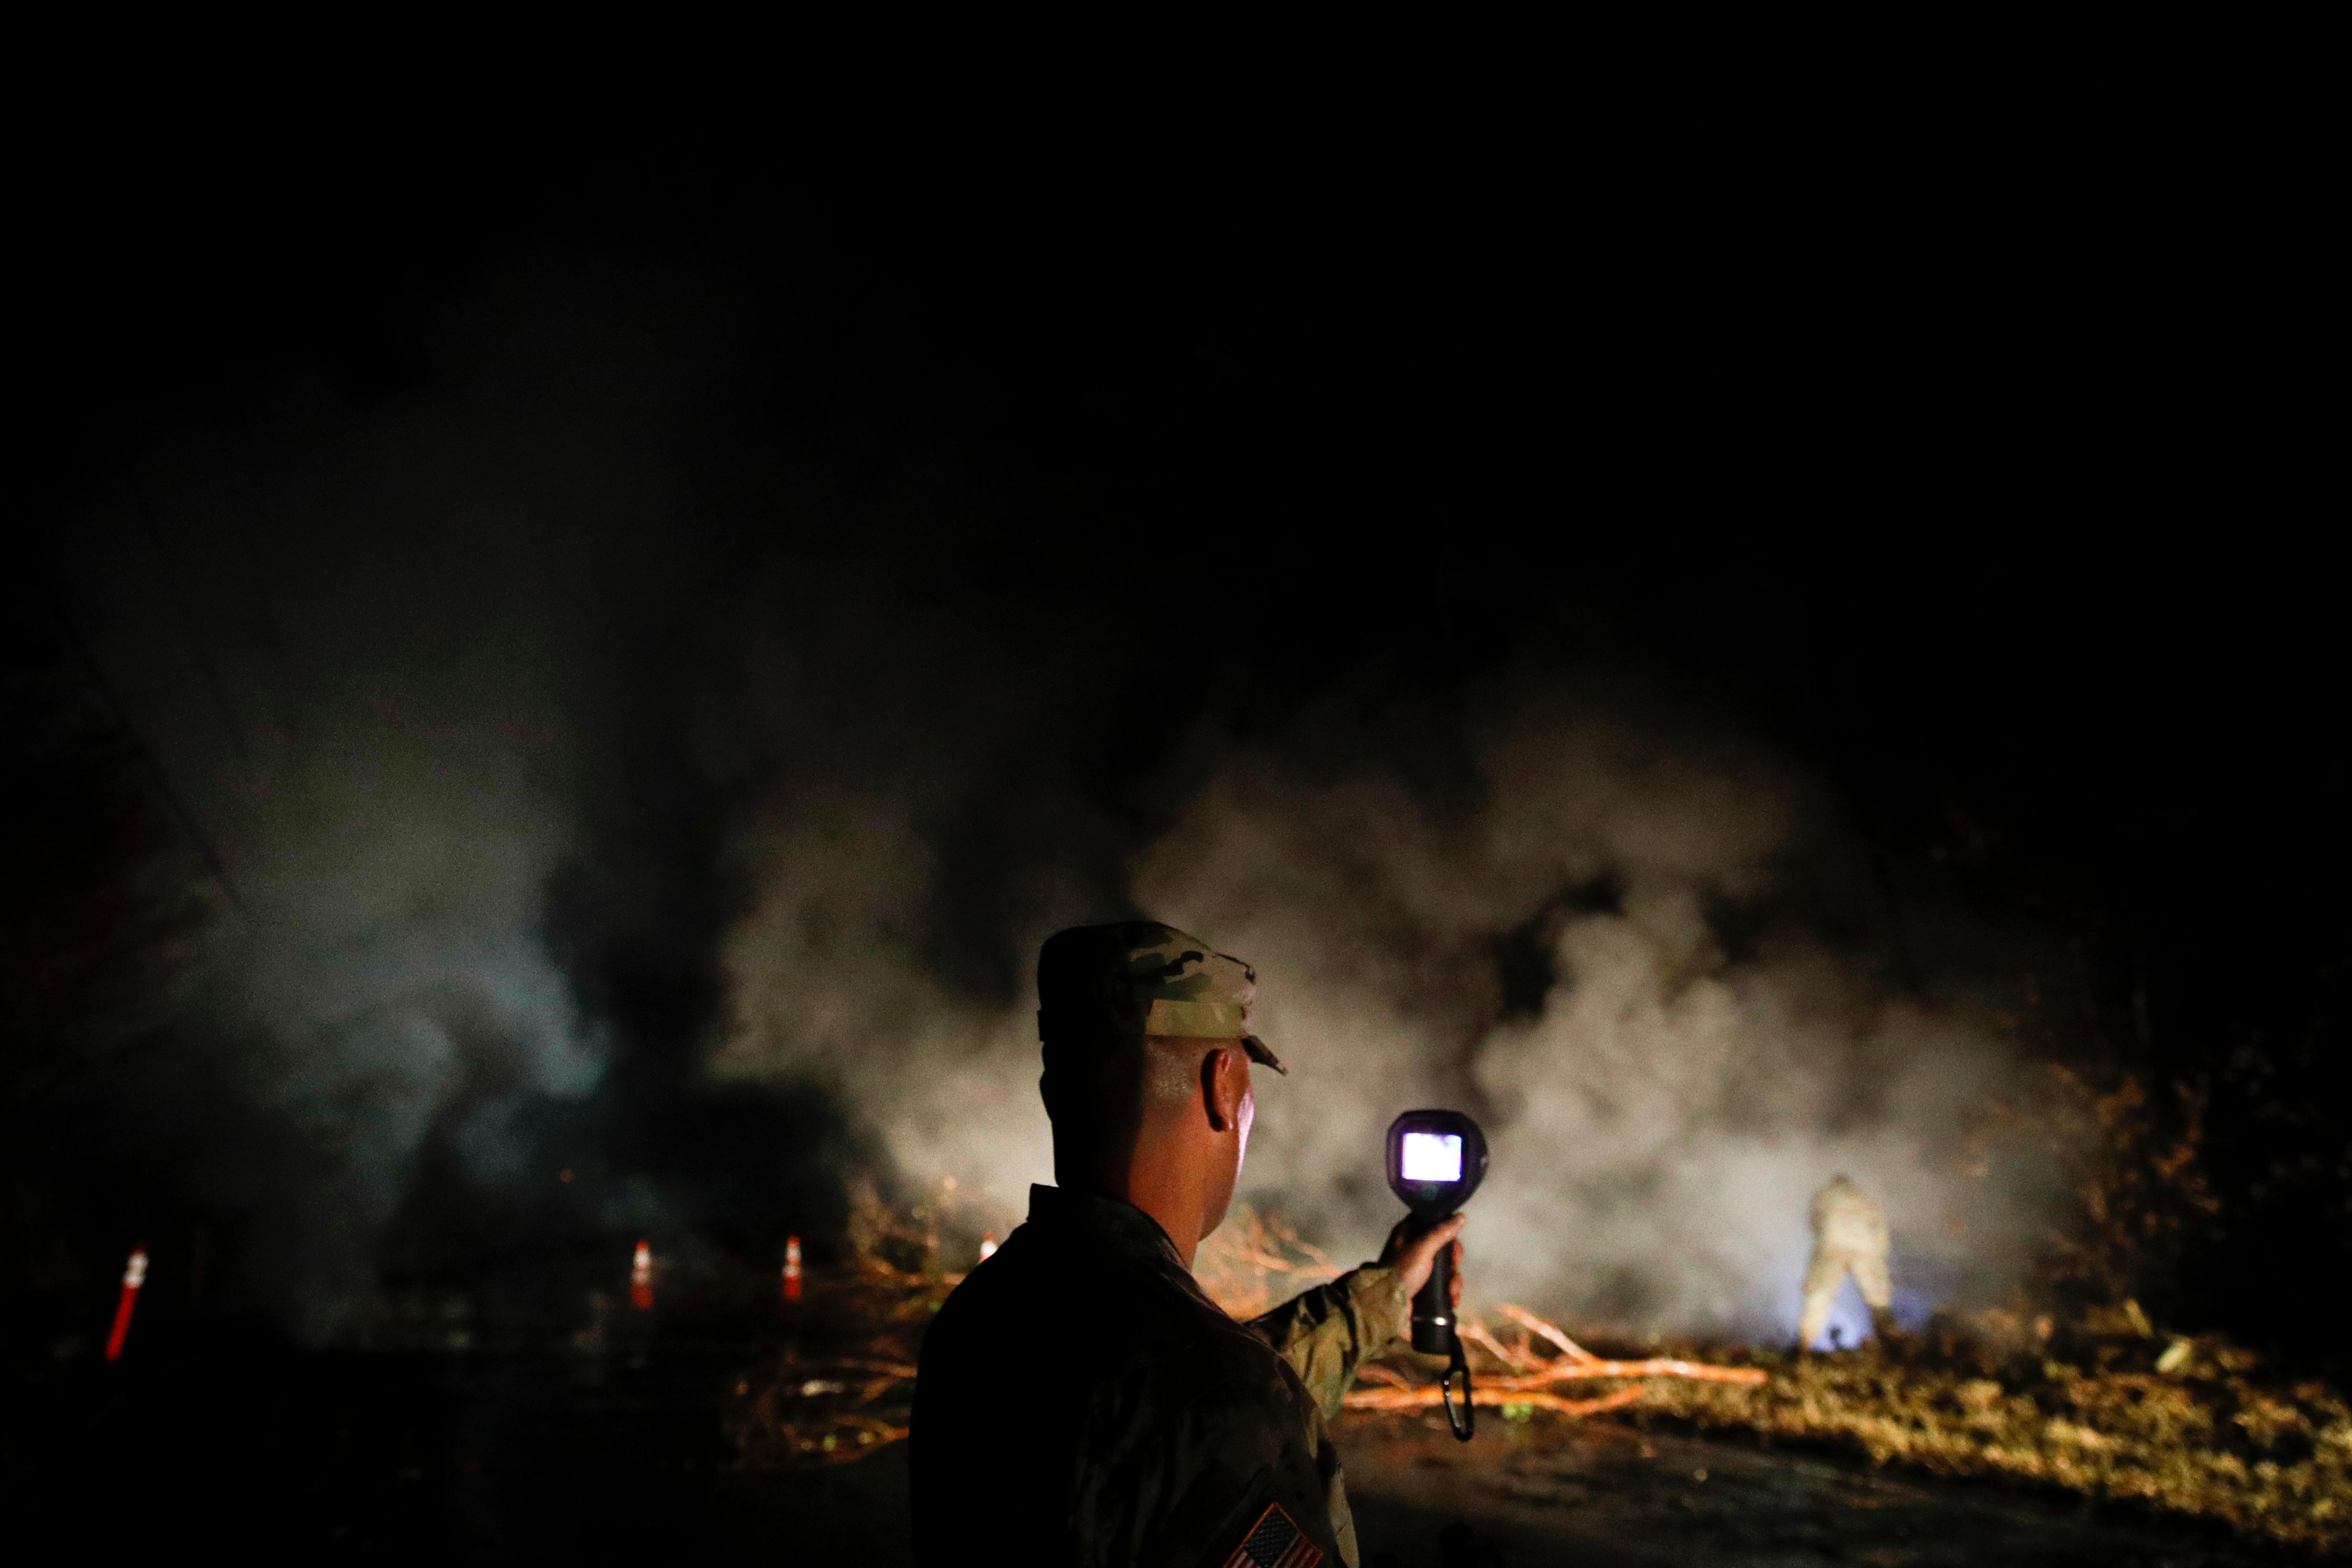 First Lt. Aaron Hew Len, and Sgt. 1st Class Carl Satterwaite, background right, of the U.S. National Guard, test air quality near cracks emitting volcanic gases from a lava flow in the Leilani Estates subdivision near Pahoa, Hawaii on Thursday, May 10, 2018. Kilauea has destroyed more than 35 structures since it began releasing lava from vents about 25 miles (40 kilometers) east of the summit crater. (AP Photo/Jae C. Hong)